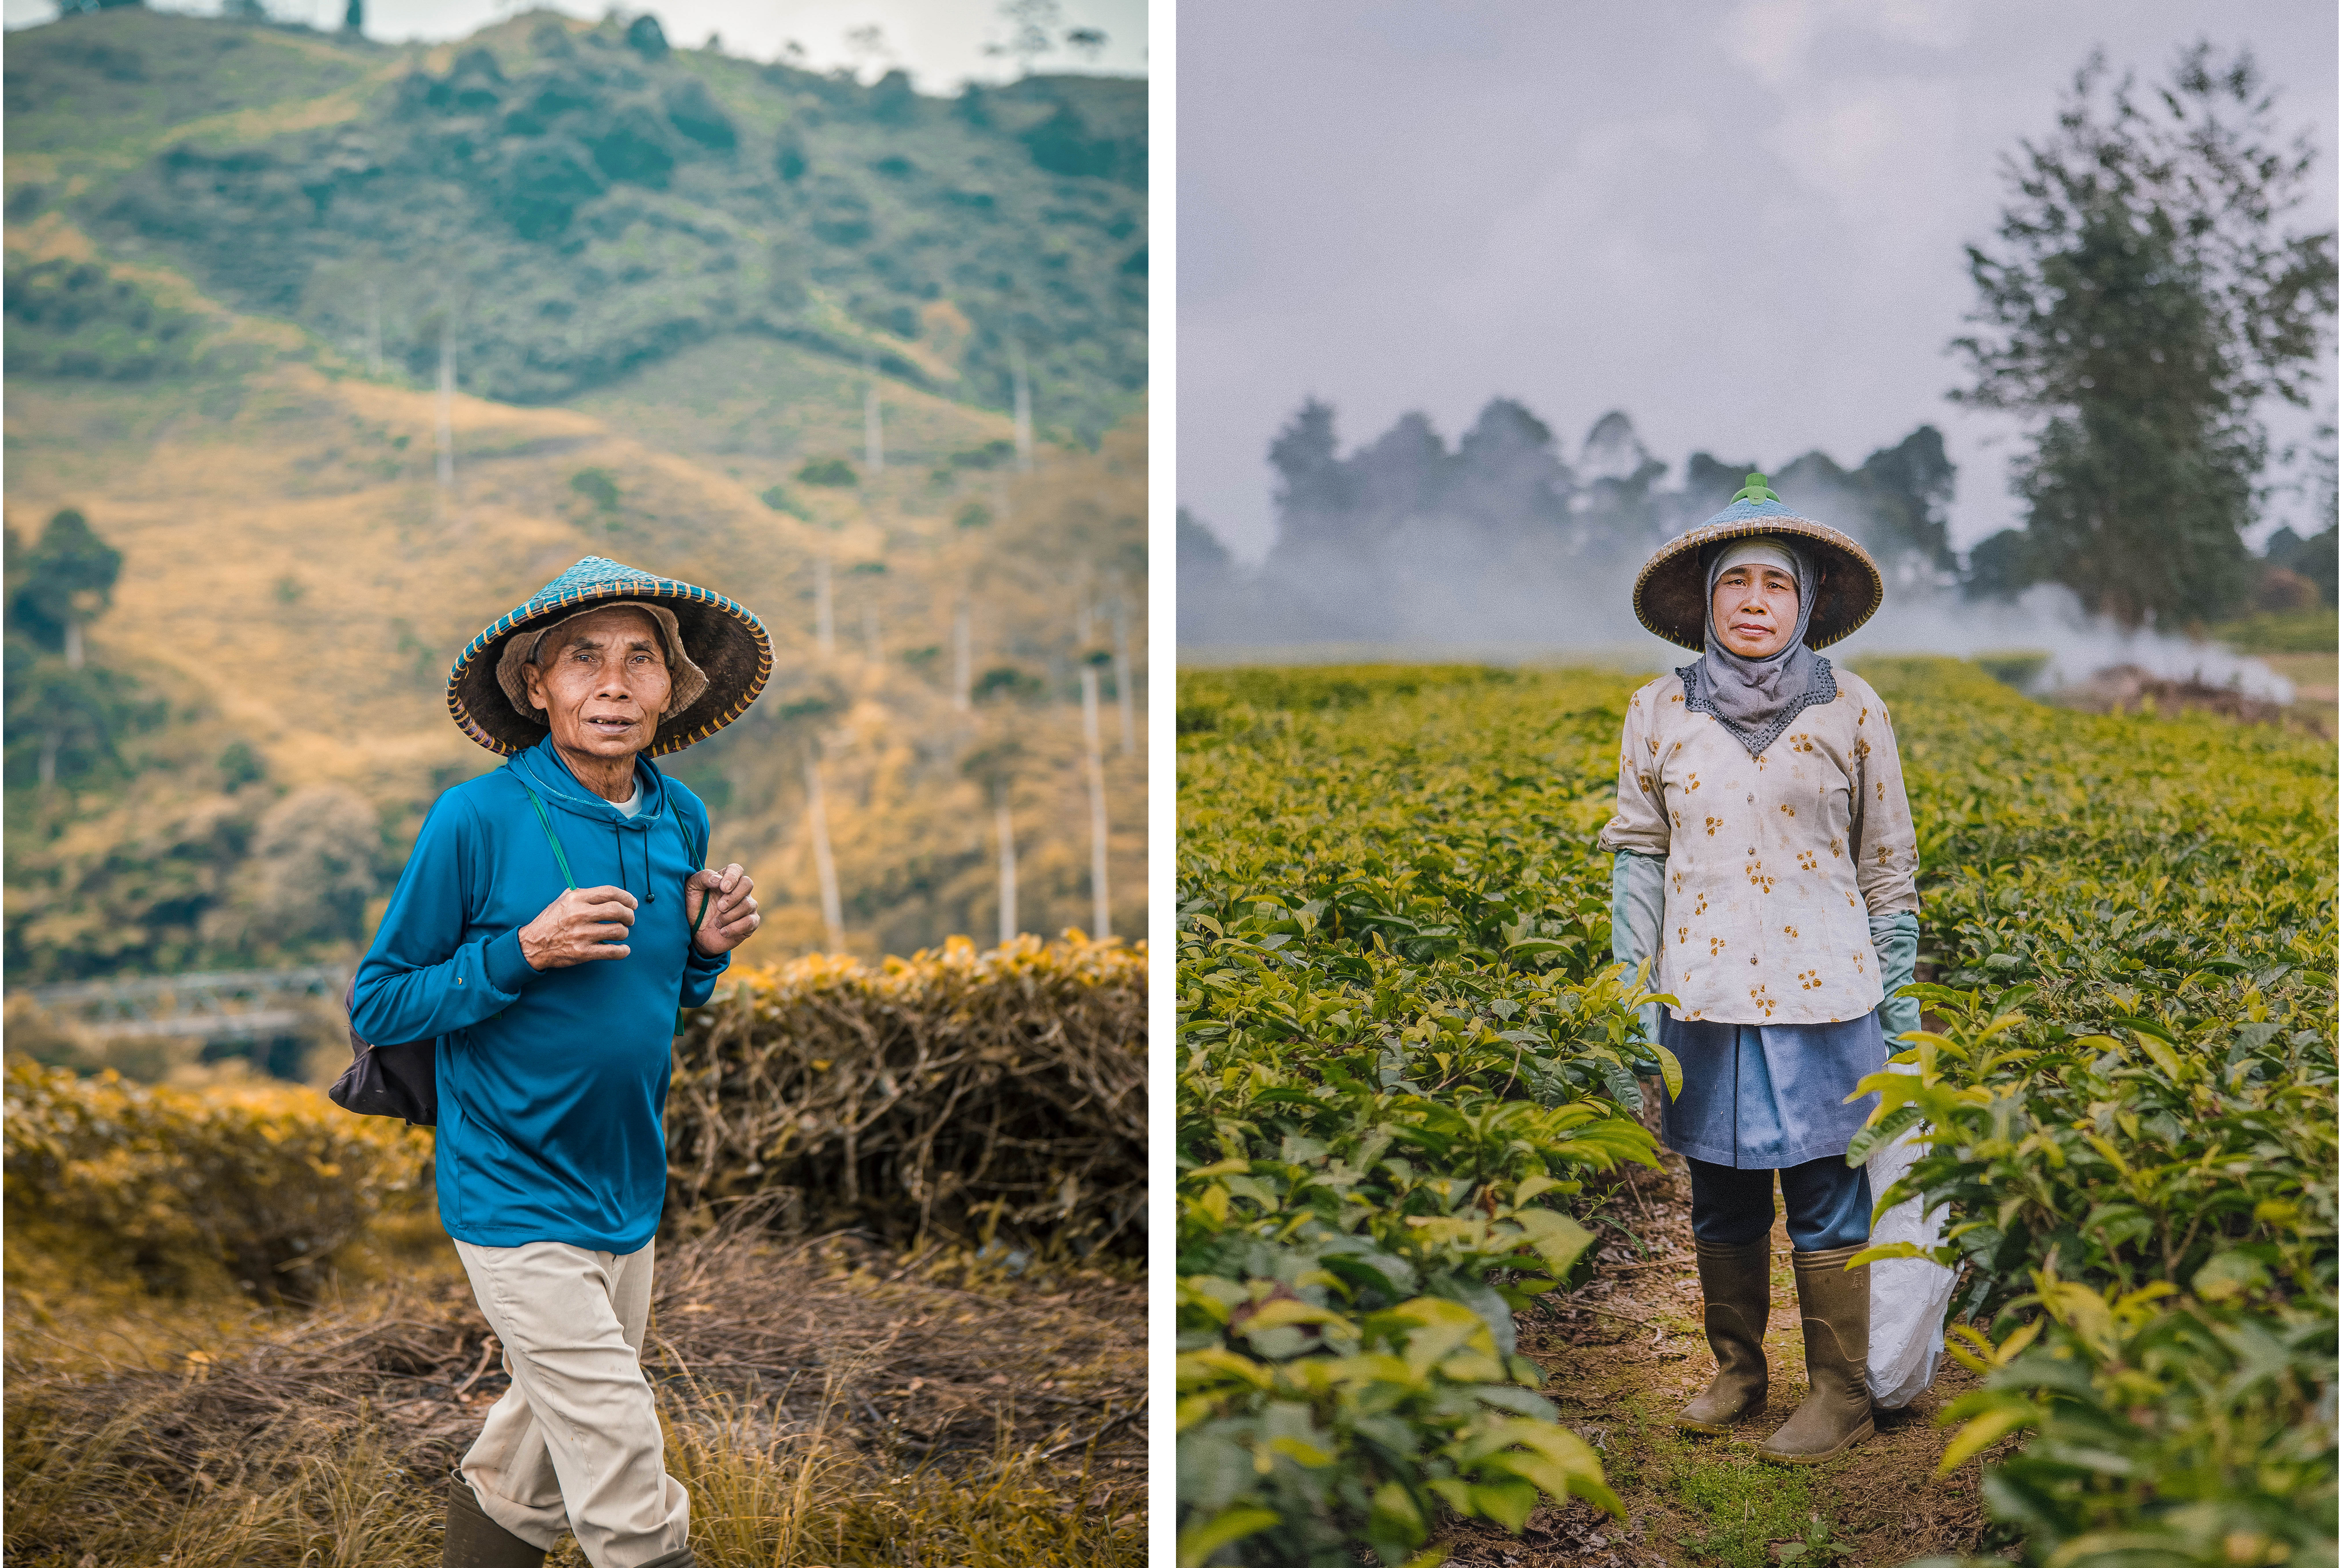 javanese local people working in the fields and tea plantations strangers capturing moment portrait